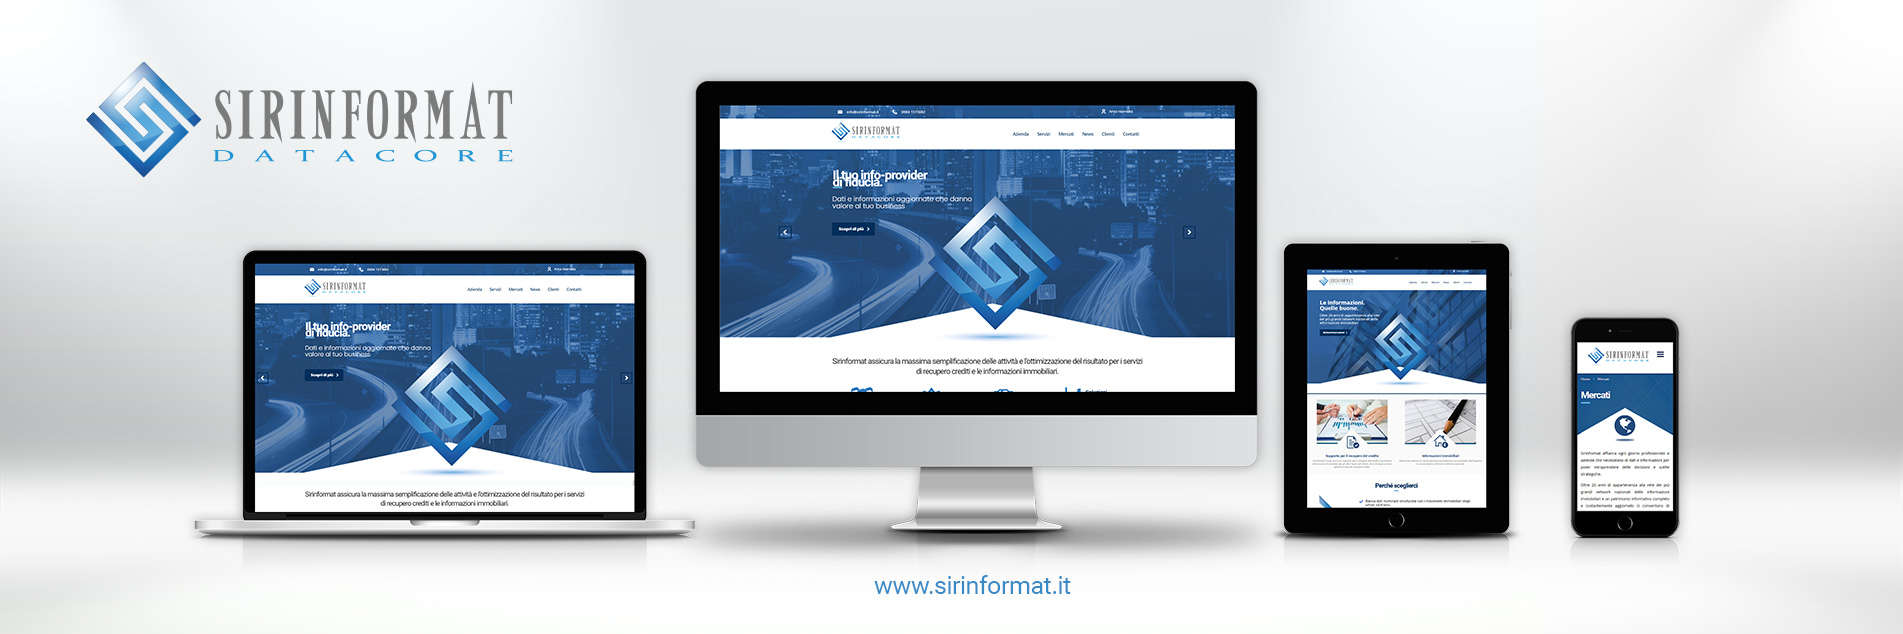 Sirinformat new website is online | Real estate information and debt collection services